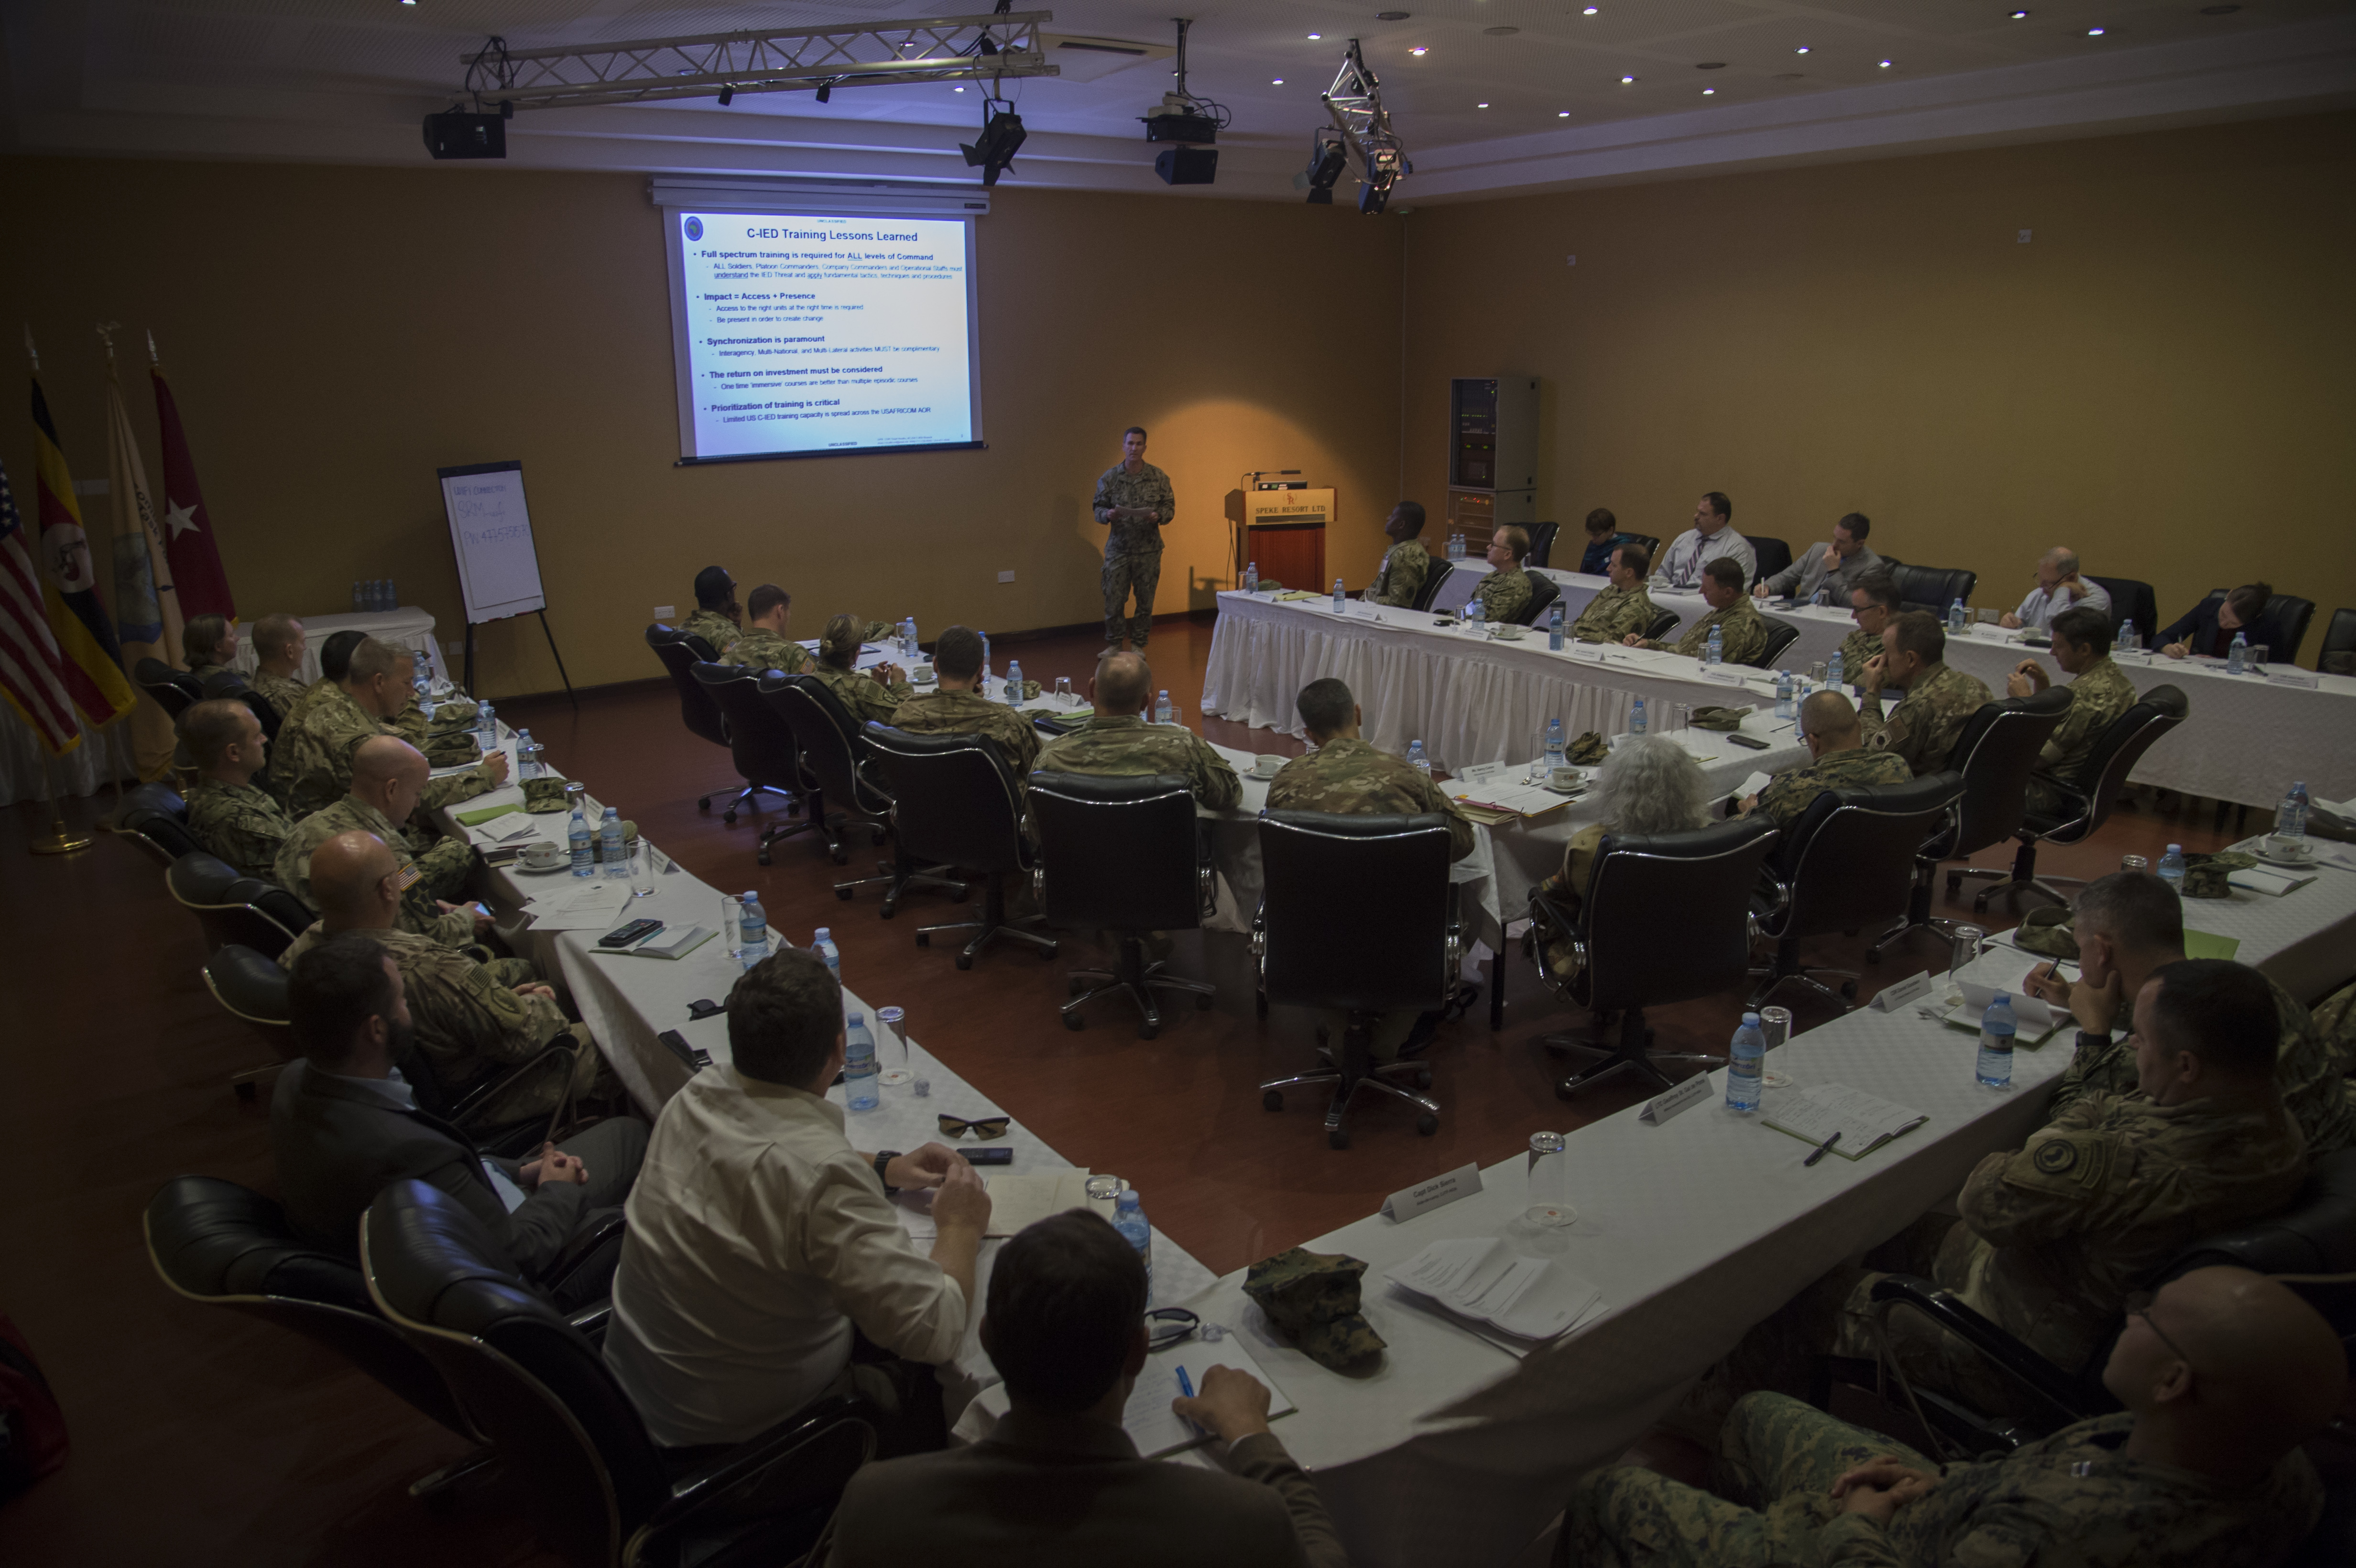 U.S. Navy Cmdr. Chad Houllis, U.S. Africa Command (AFRICOM) countering improvised explosive devices (C-IED) branch, presented a C-IED threat mitigation in Somalia presentation during the 2017 East African Senior Defense Official/Defense Attaché Conference in Kampala, Uganda on Oct. 18, 2017. Subject matter experts from a variety of government agencies discussed military partnership opportunities that enhance security and stability throughout East Africa. (U.S. Air National Guard photo by Tech. Sgt. Joe Harwood)